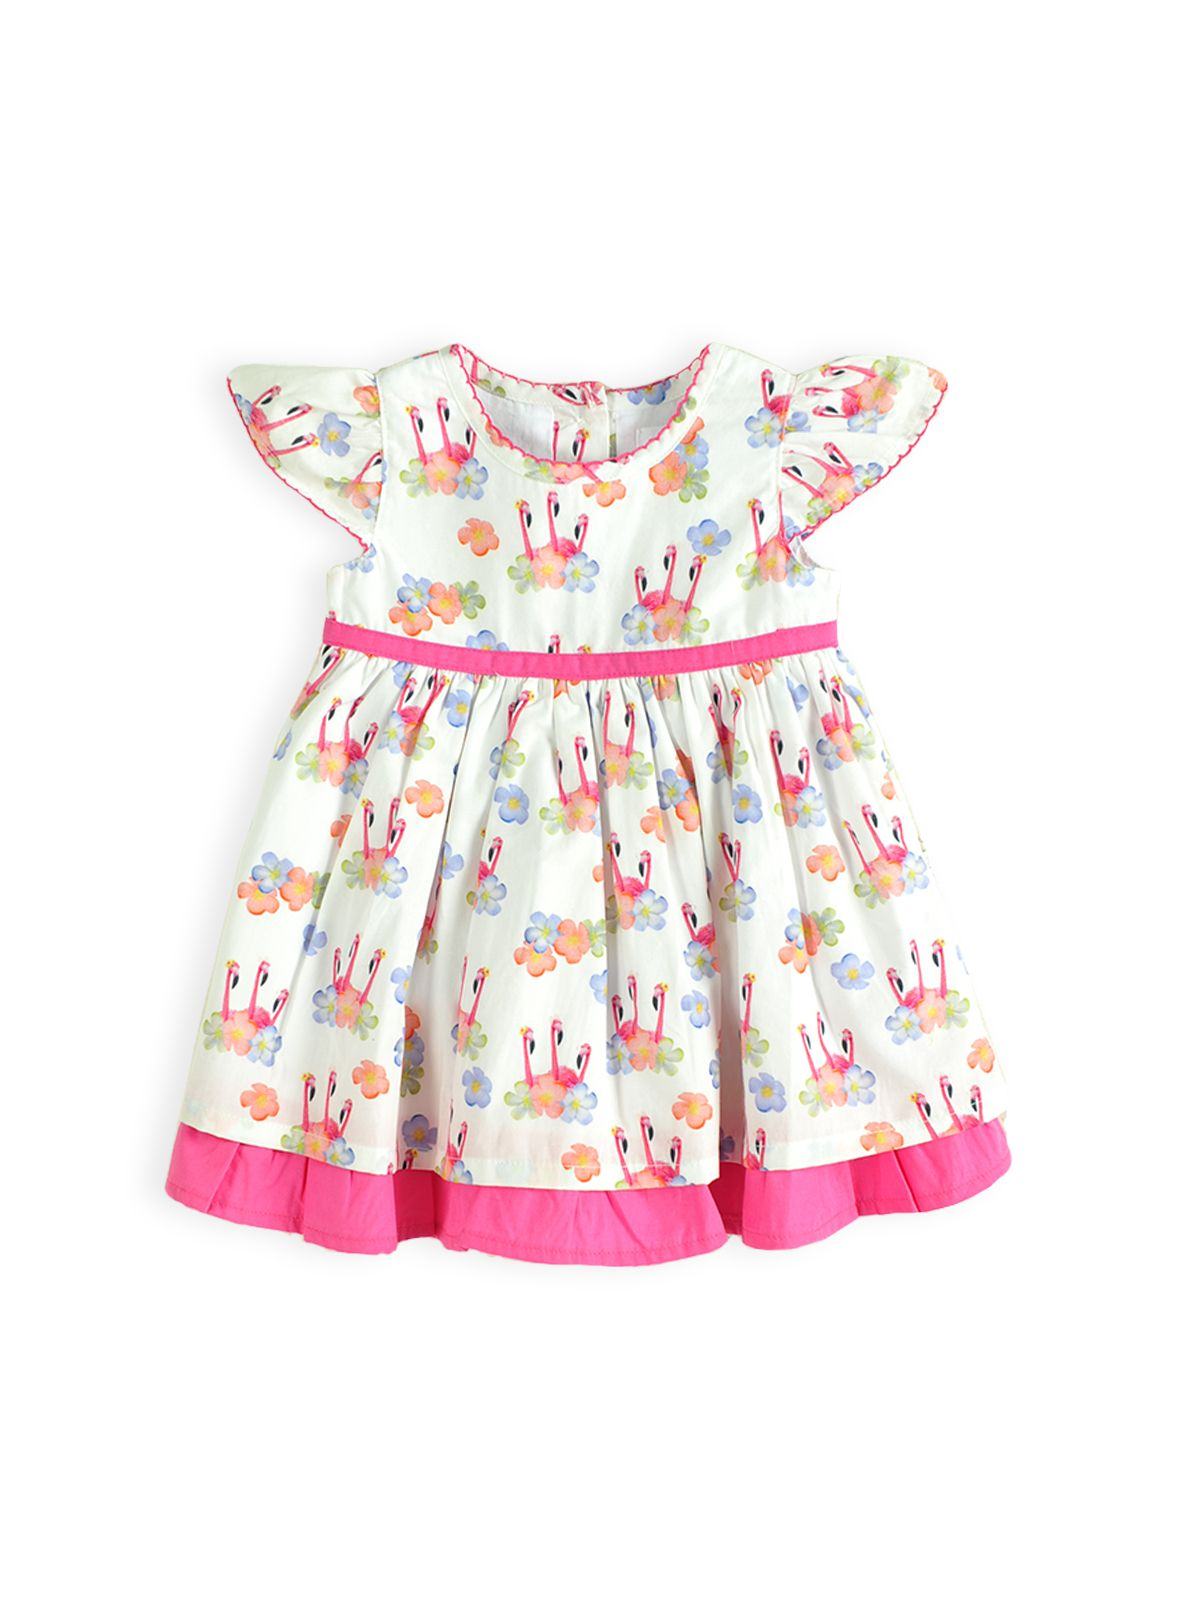 Girls flamingo frangapani dress